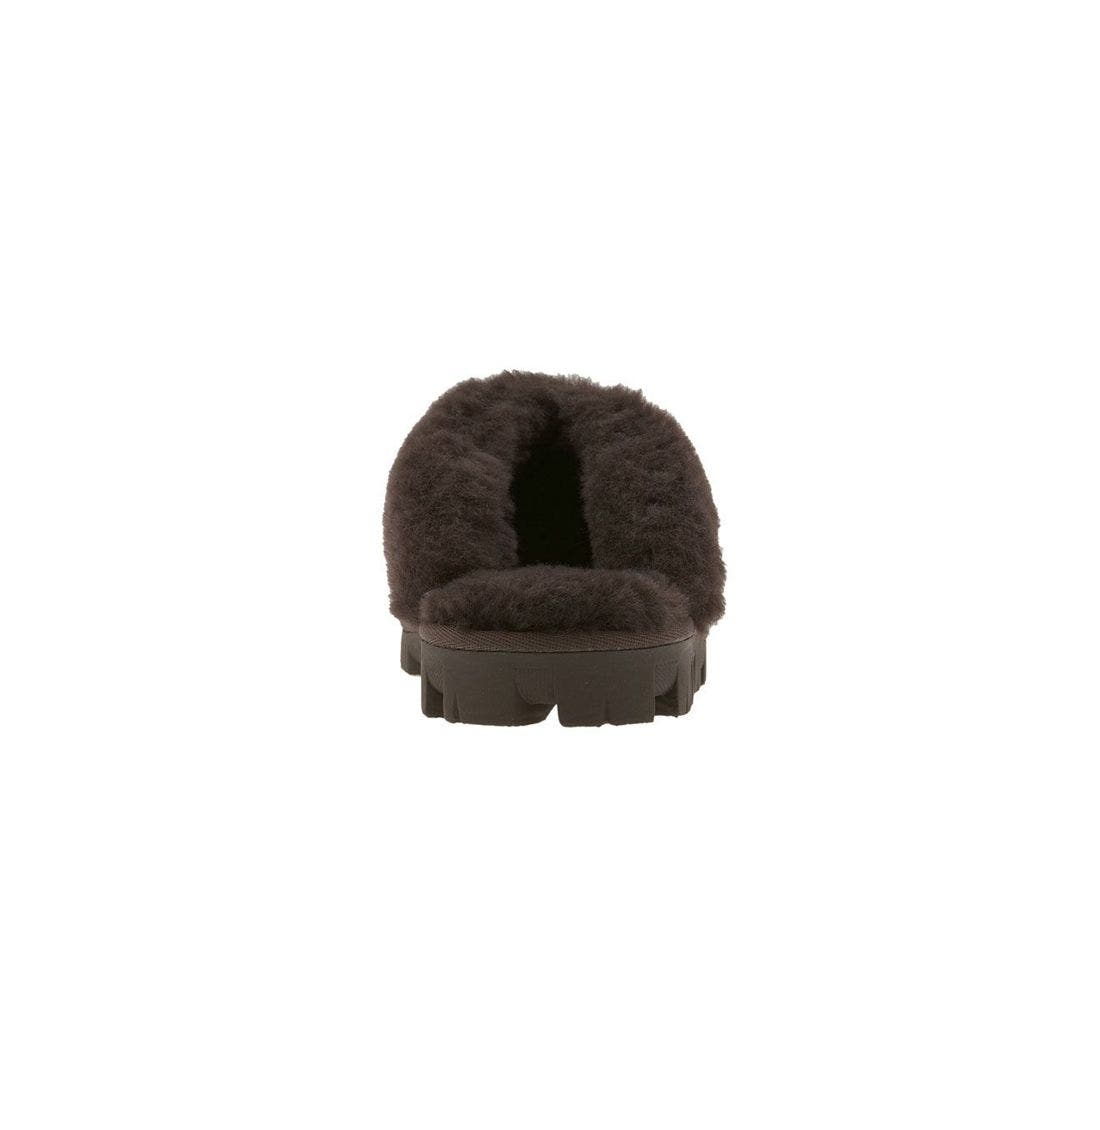 ,                             Genuine Shearling Slipper,                             Alternate thumbnail 114, color,                             200